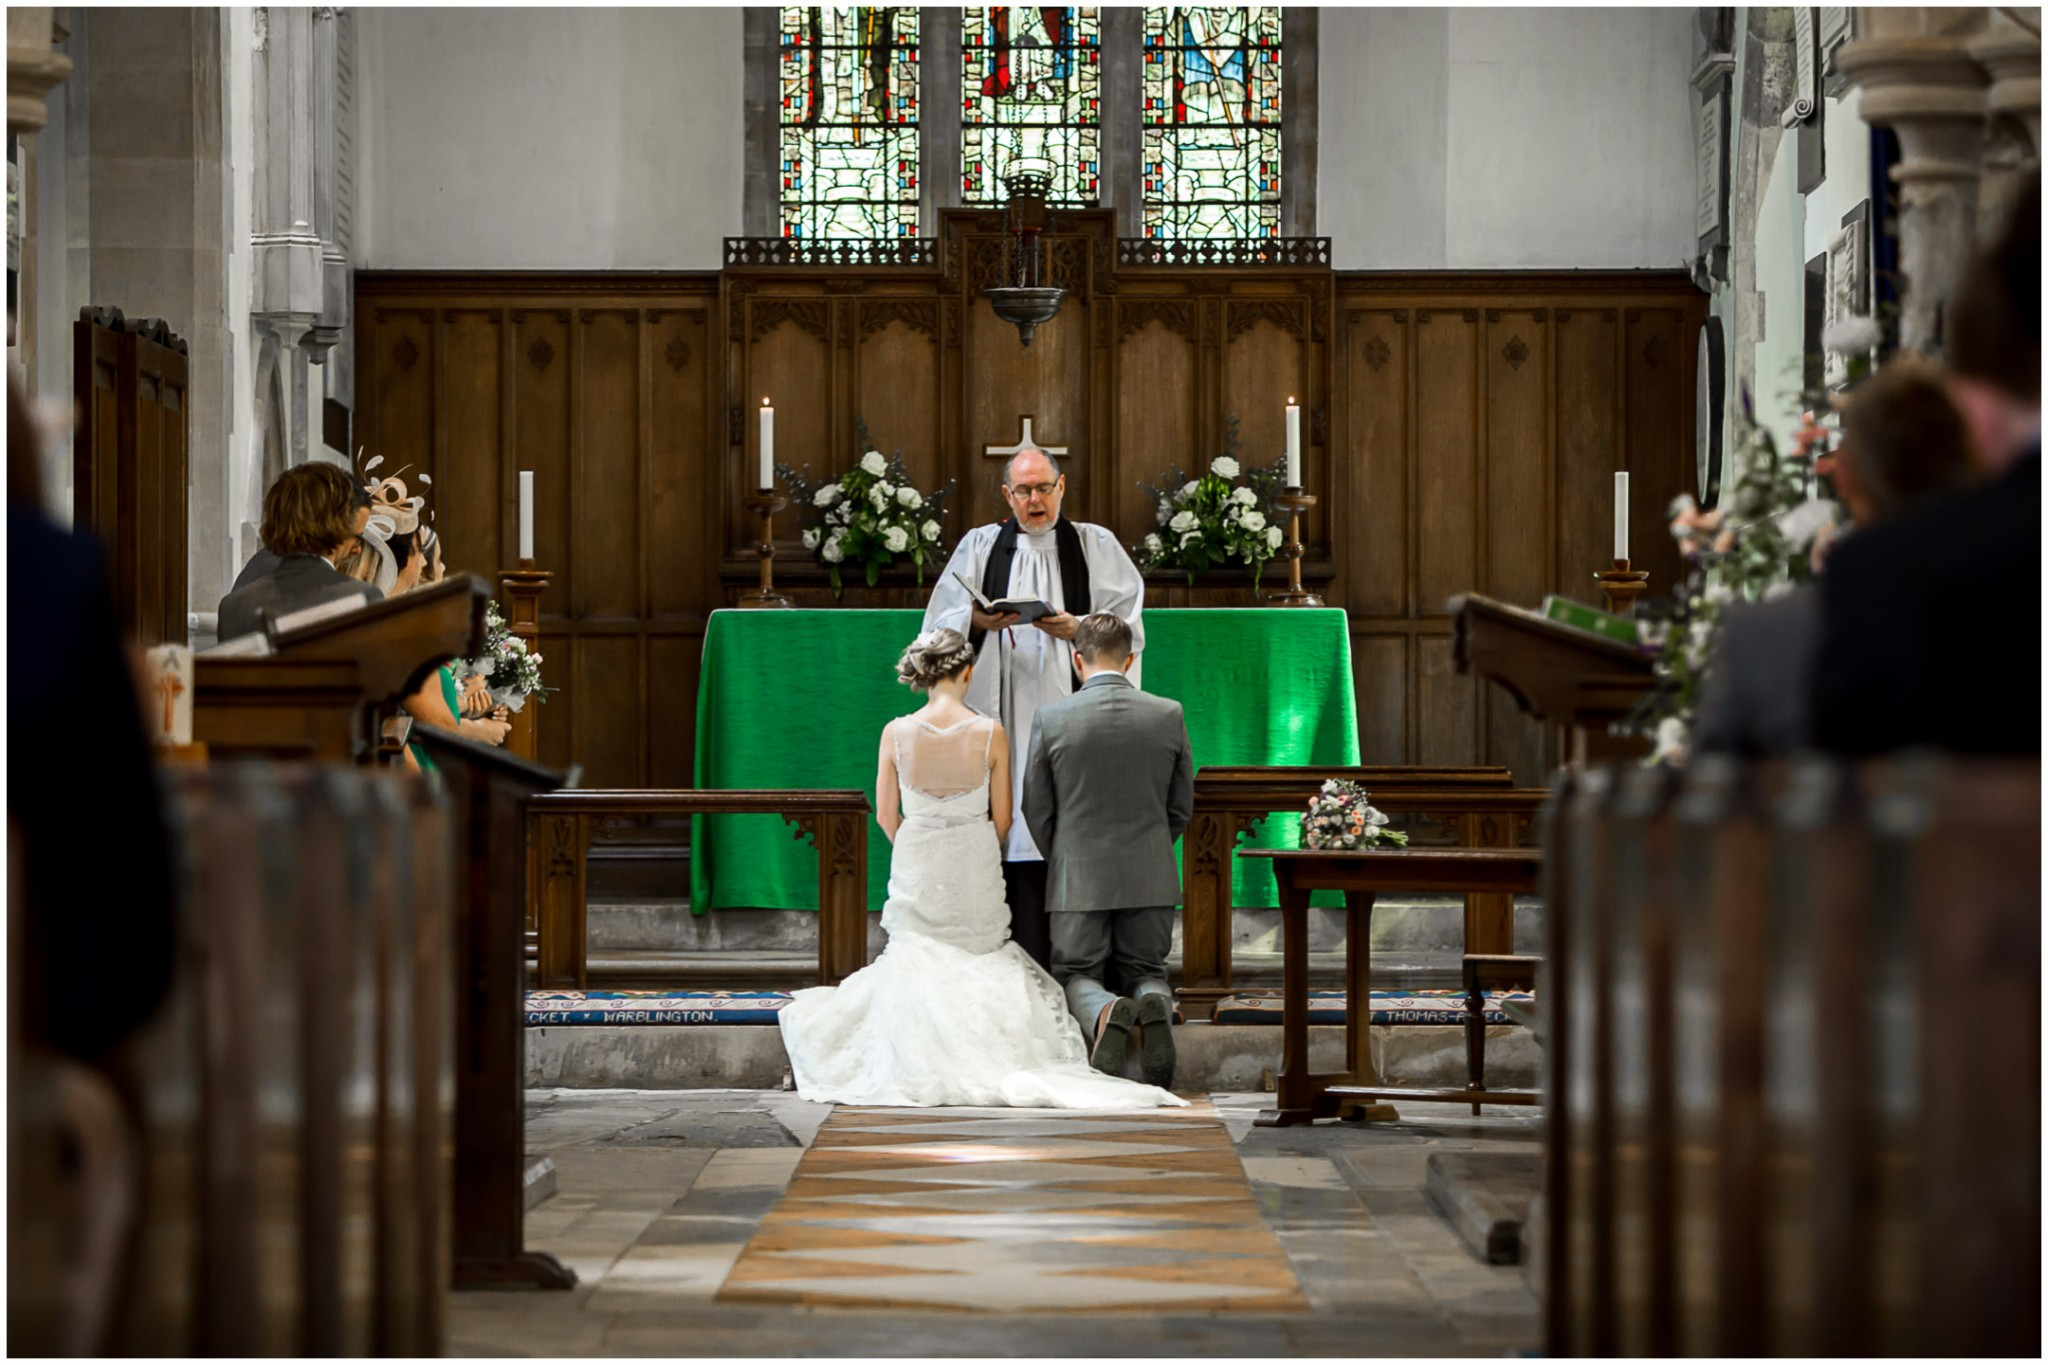 St Thomas a Becket Church Wedding kneeling for blessing